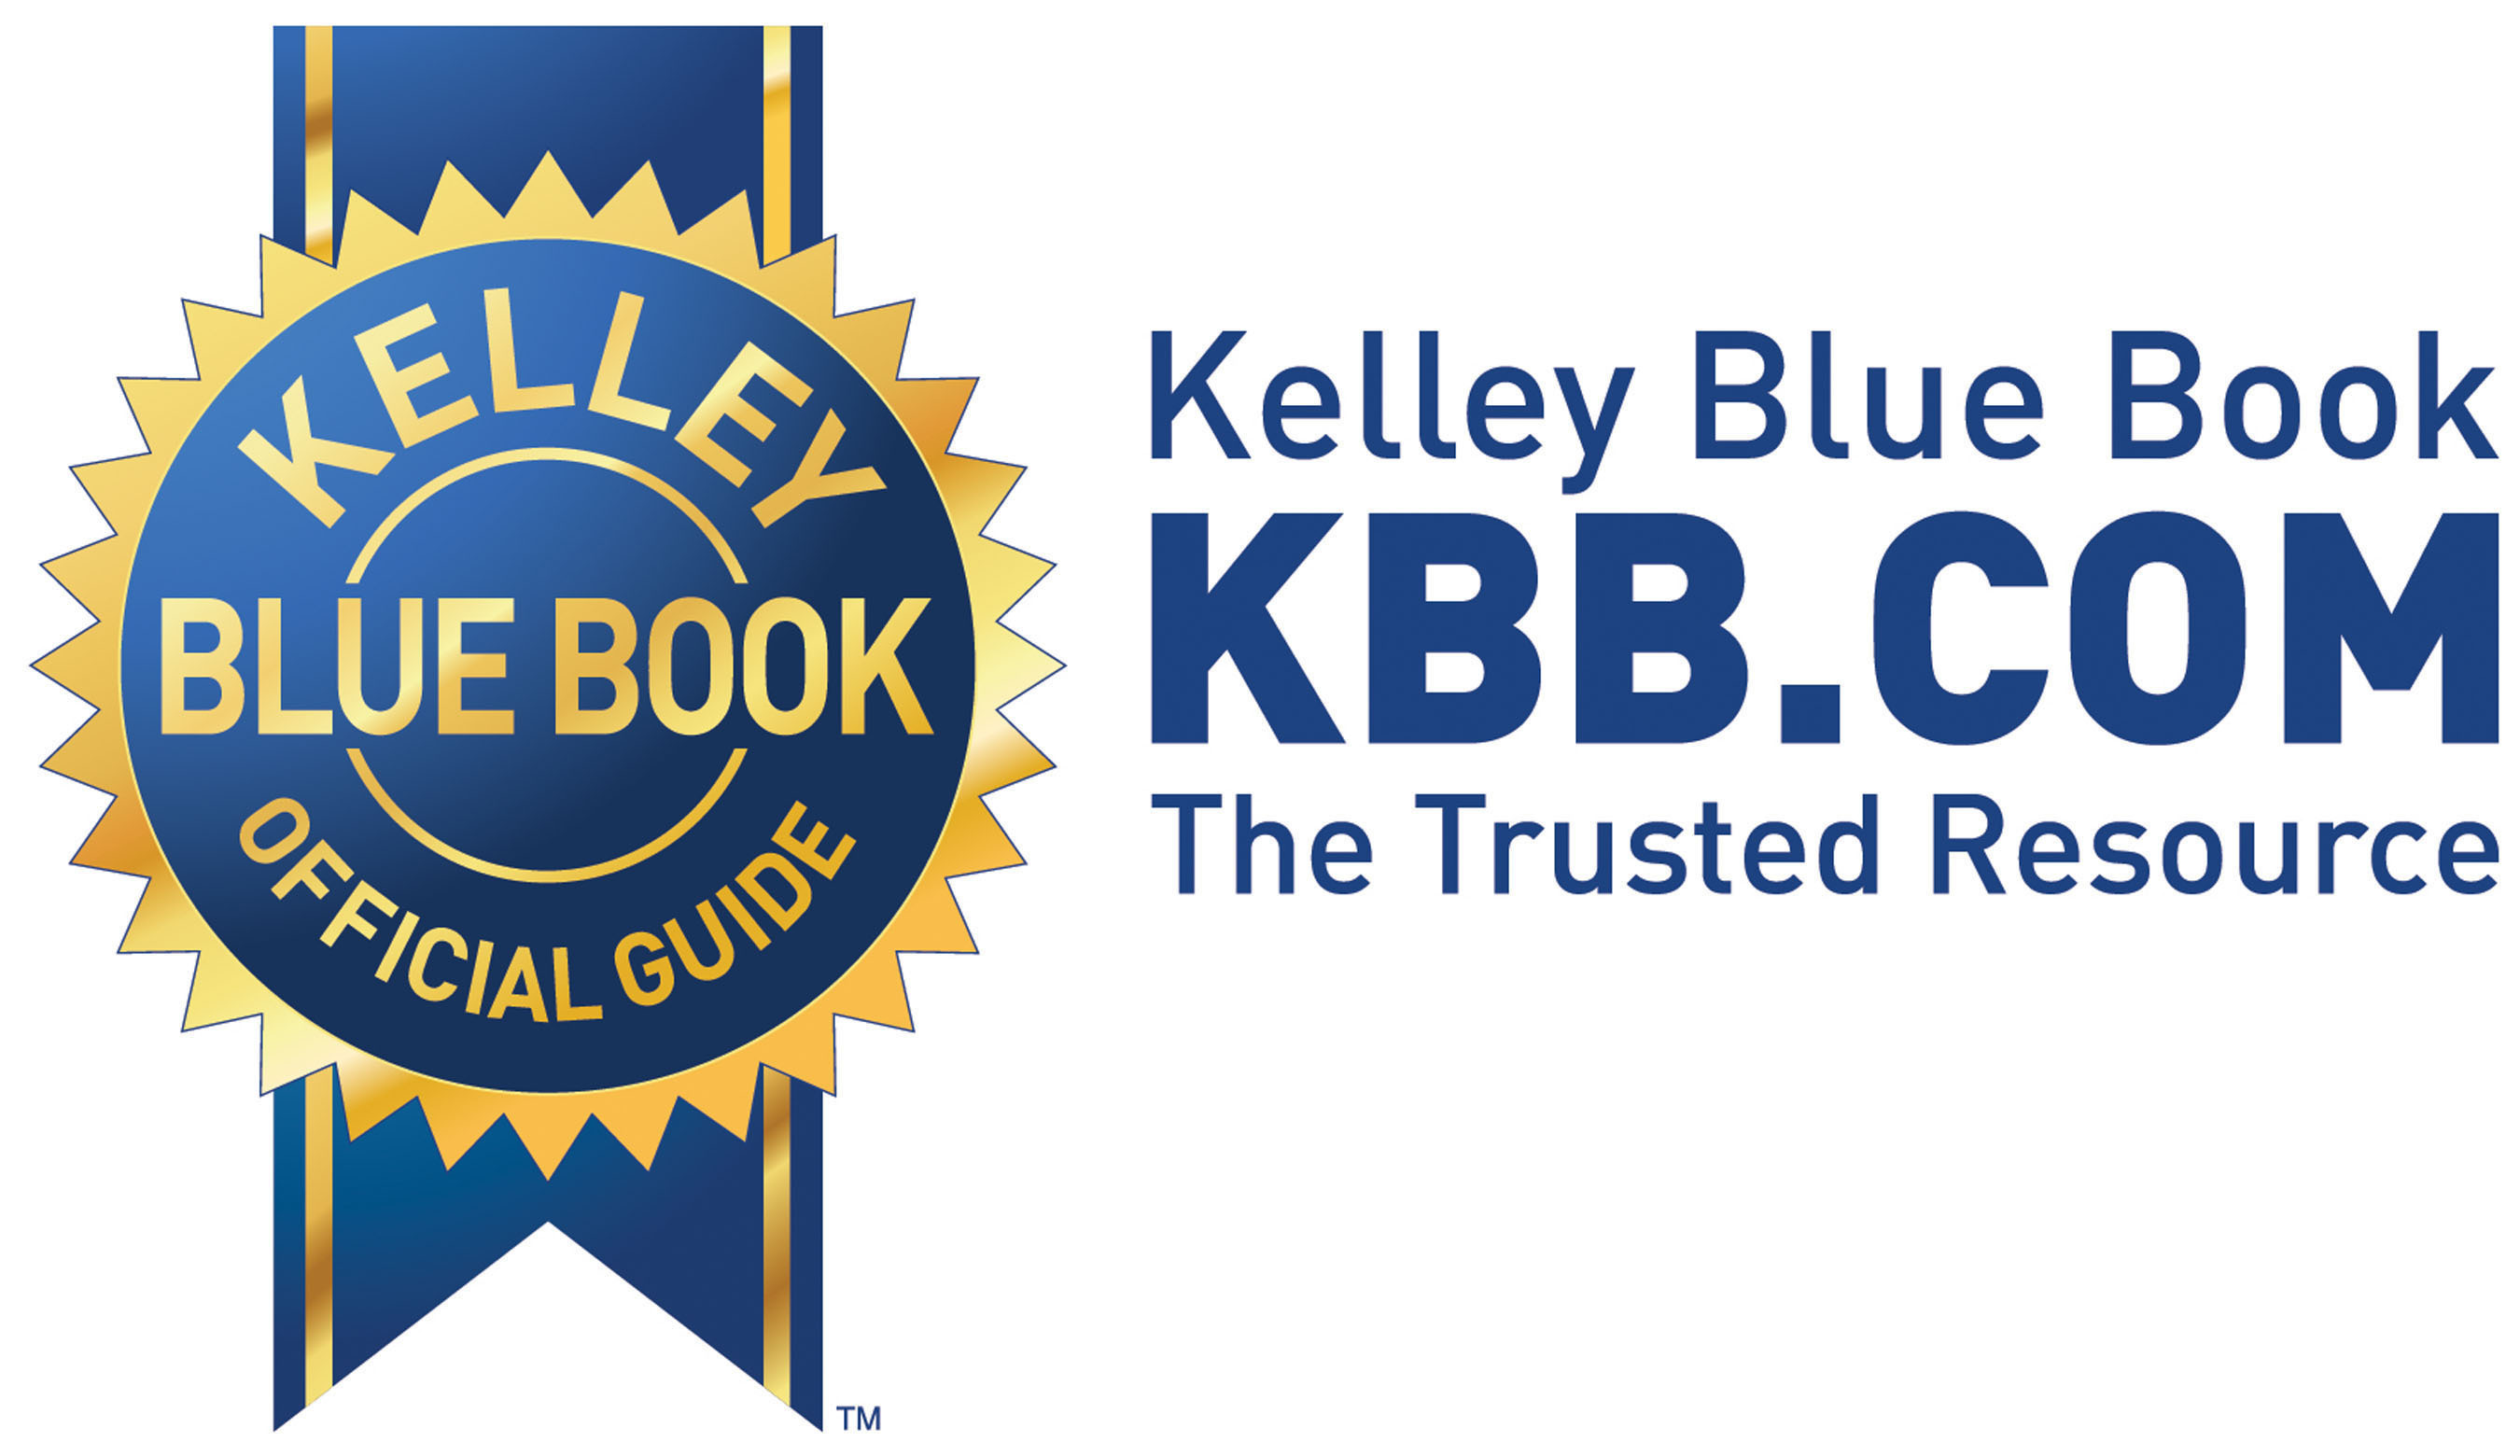 kelley blue book now offers customers access to batch vin value appending service